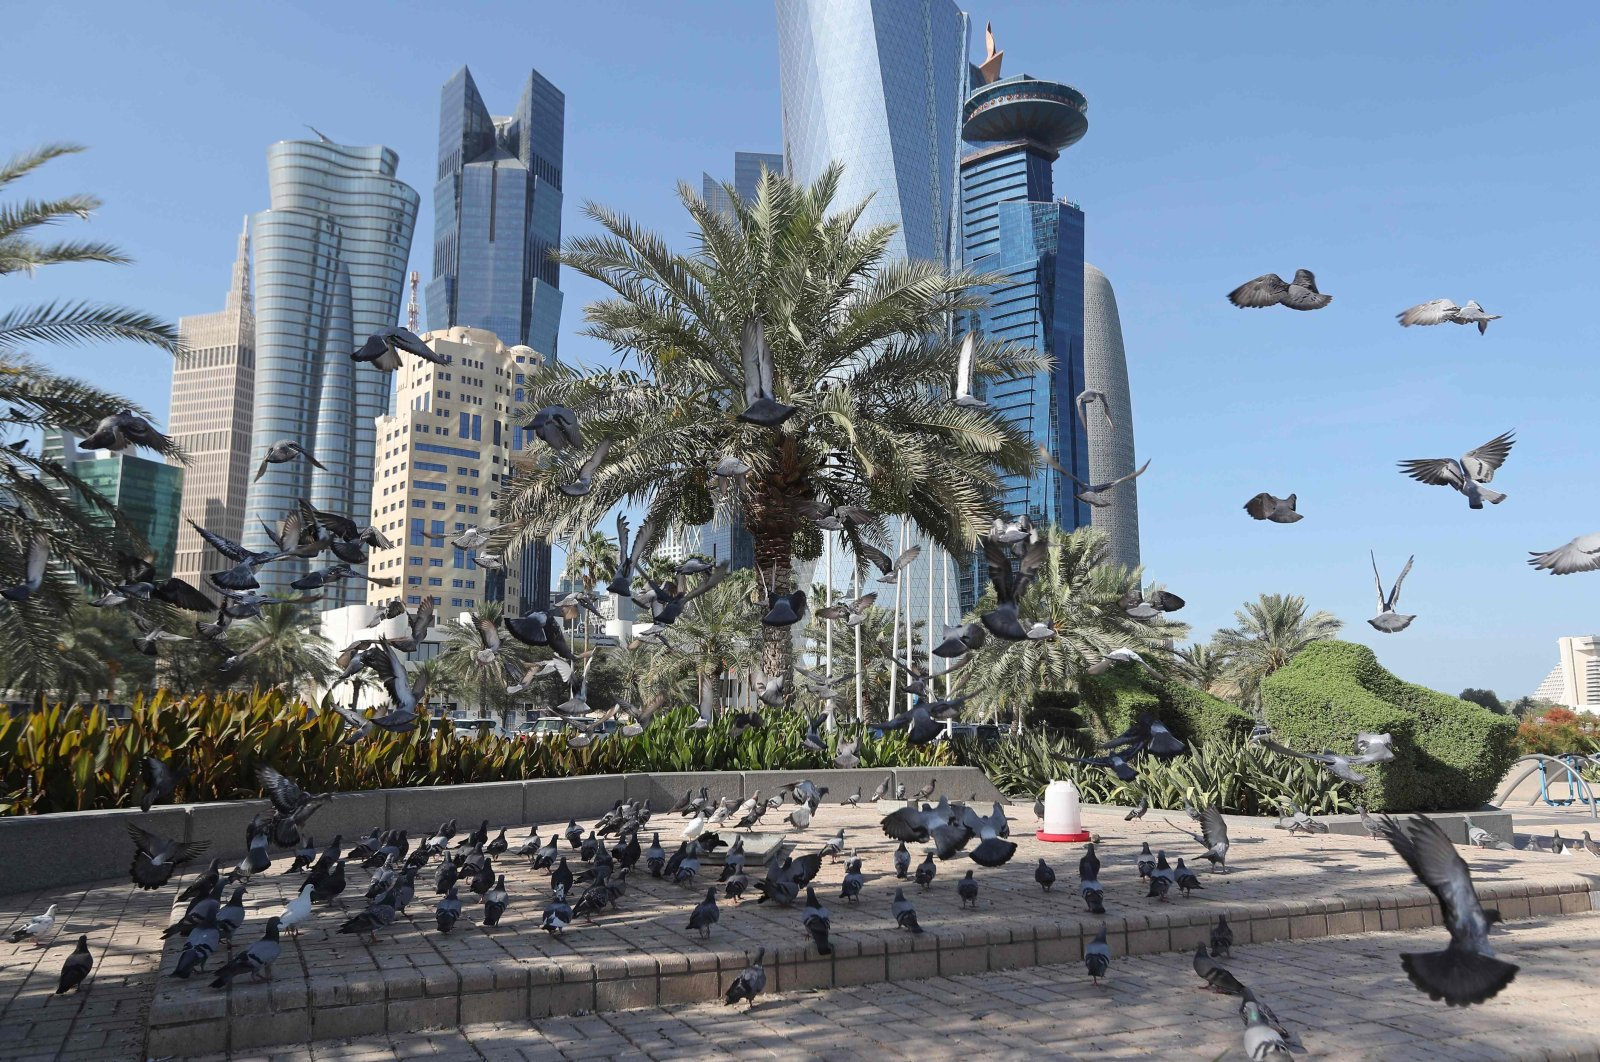 A general view taken on June 5, 2017, shows pigeons flying above the corniche in Doha, Qatar. (AFP Photo)